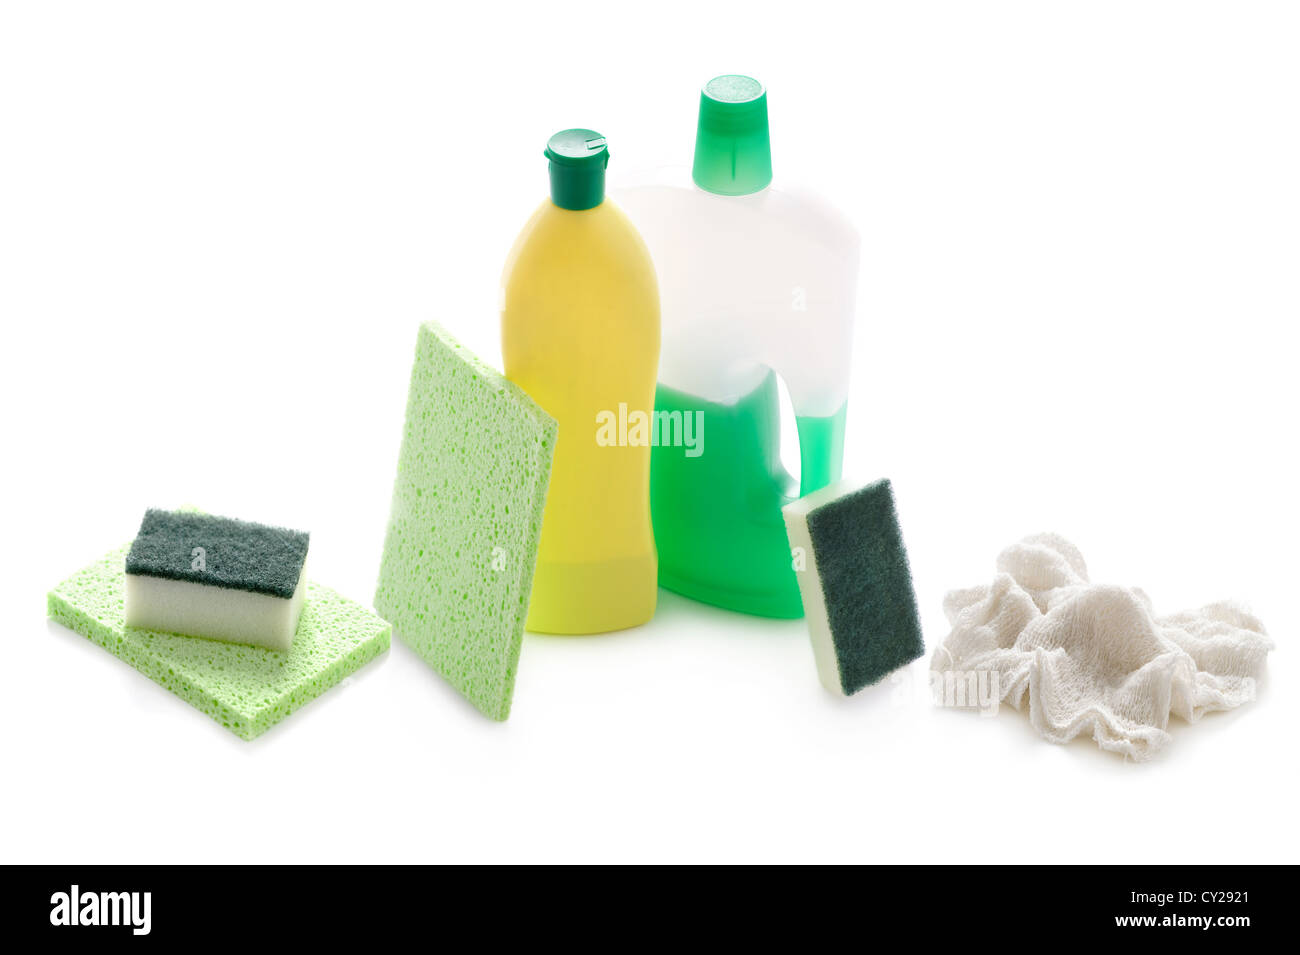 Kitchen Or Bathroom Cleaning Products And Supplies Isolated On A White  Background